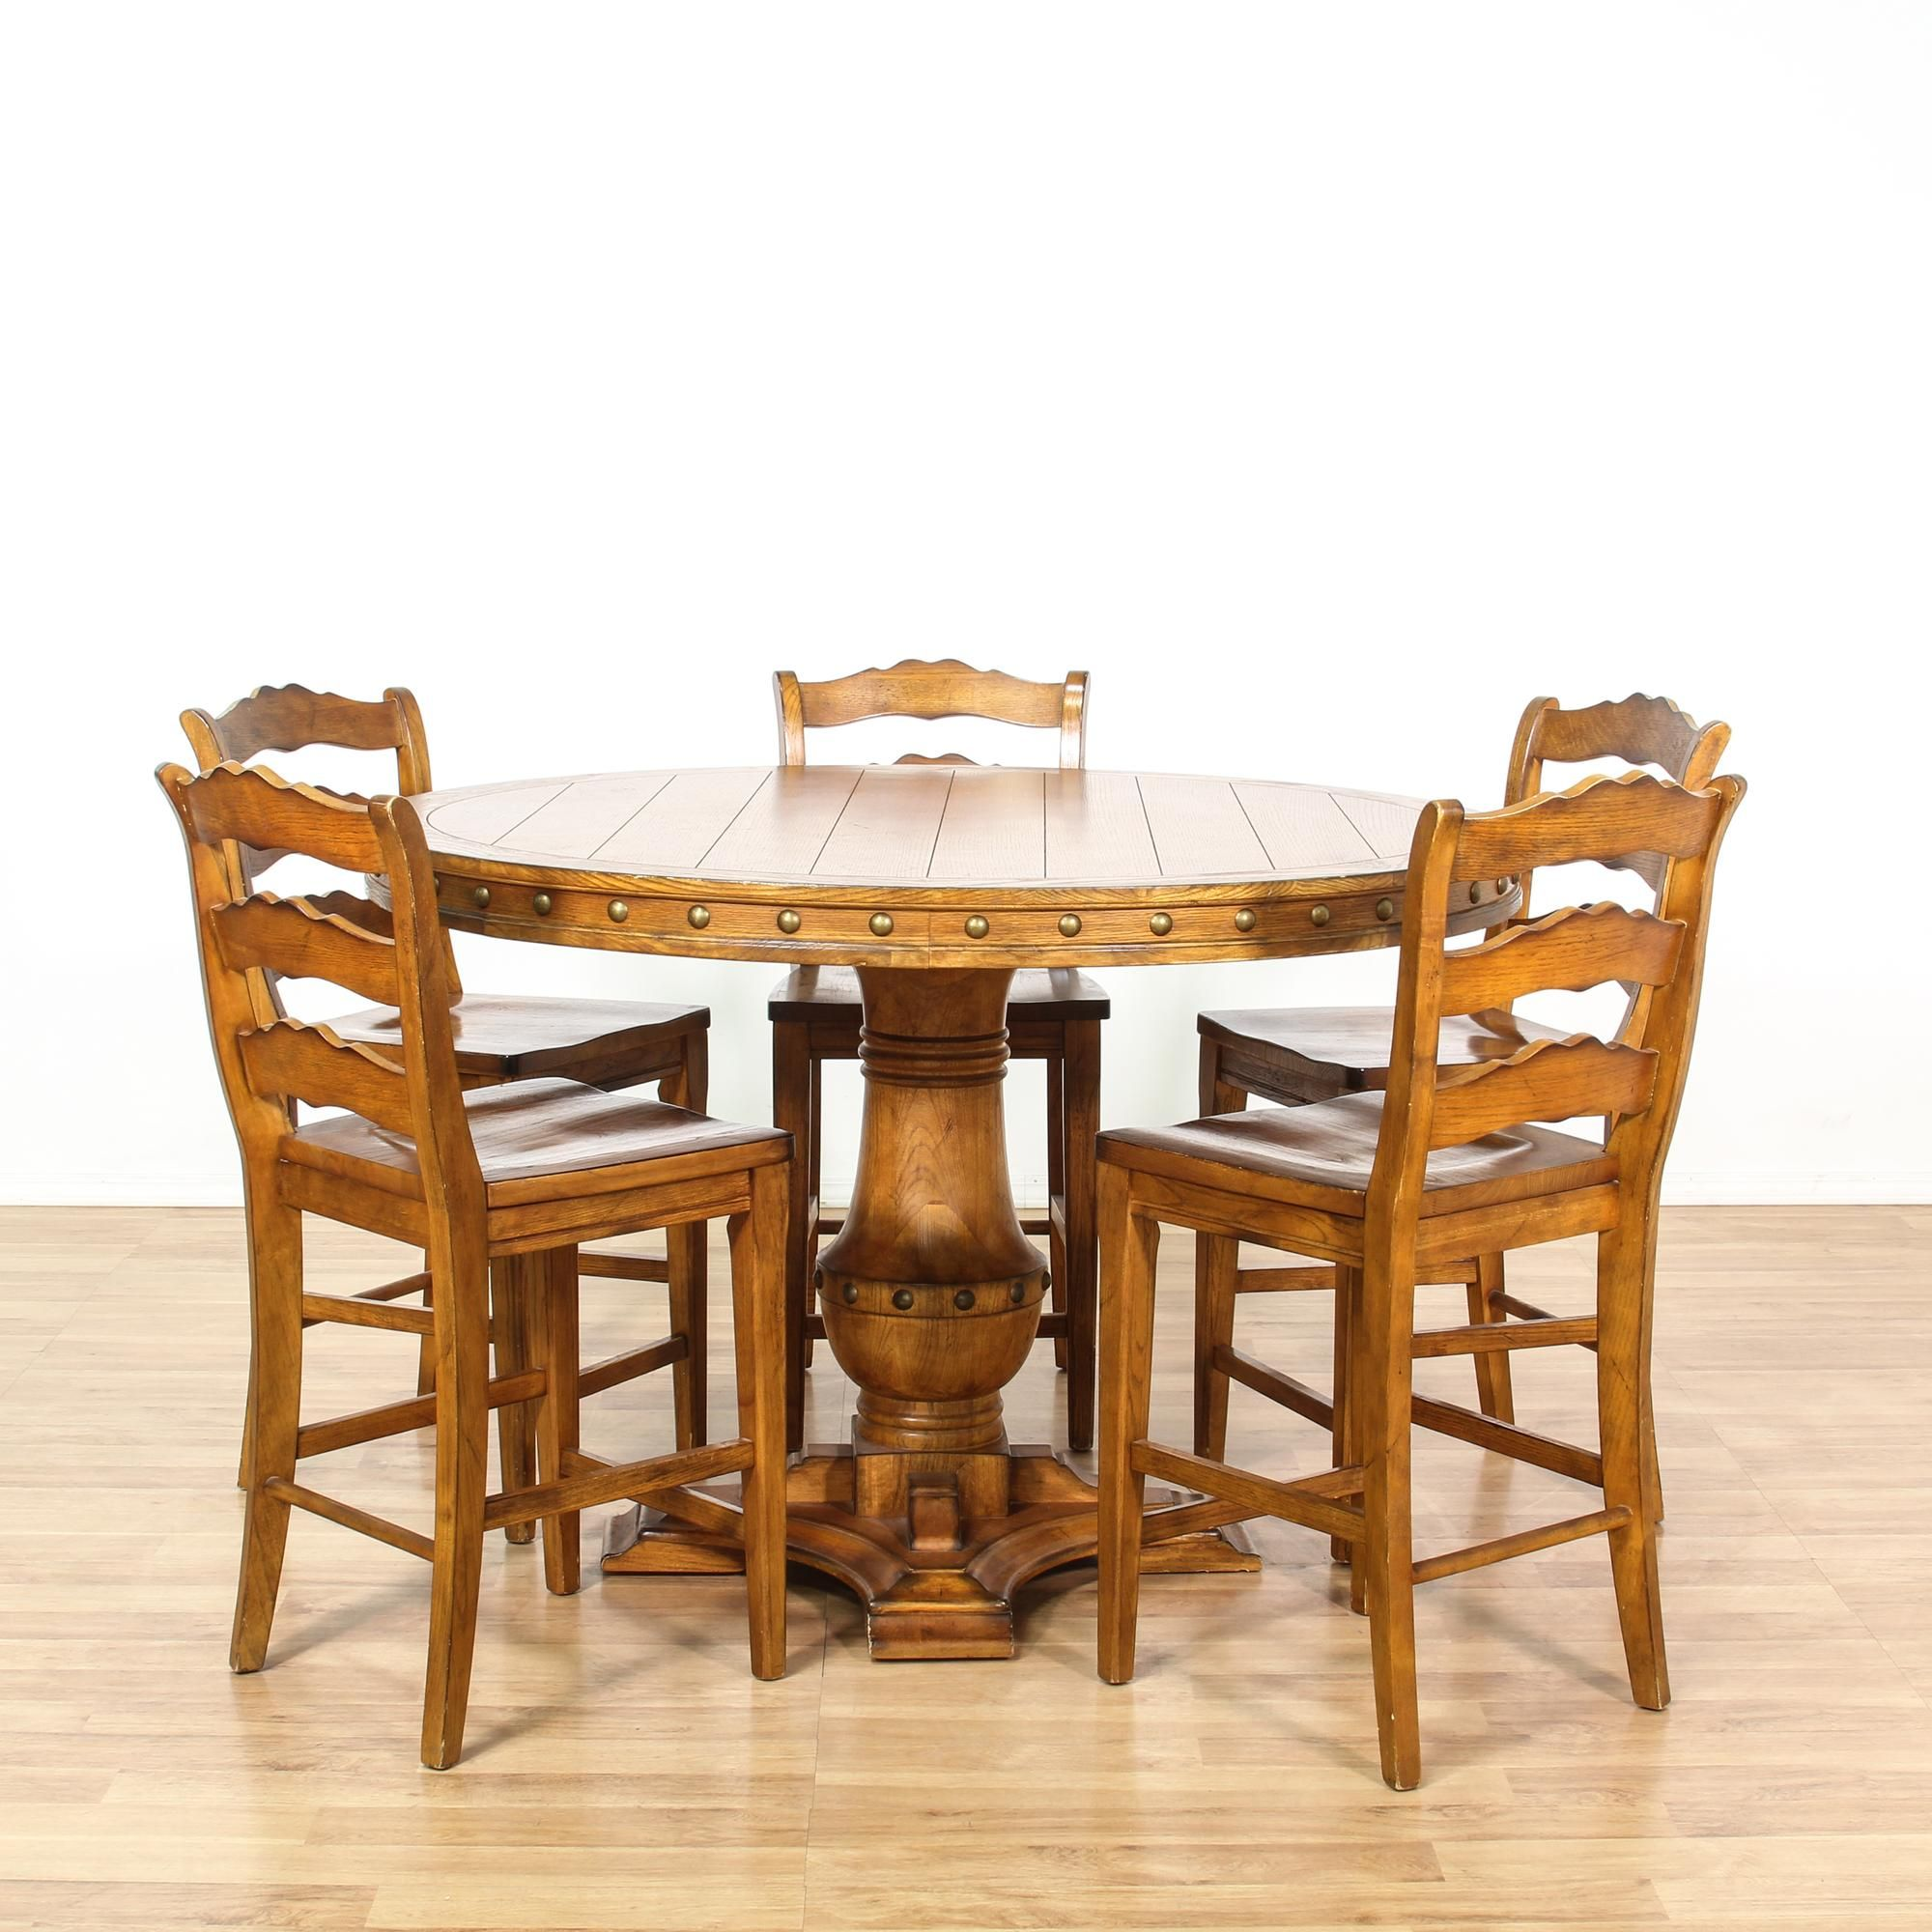 This Tall Dining Set Is Featured In A Solid Wood With A Glossy Rustic Maple Finish This Country Farmhouse Din Farmhouse Dining Set Round Dining Set Dining Set